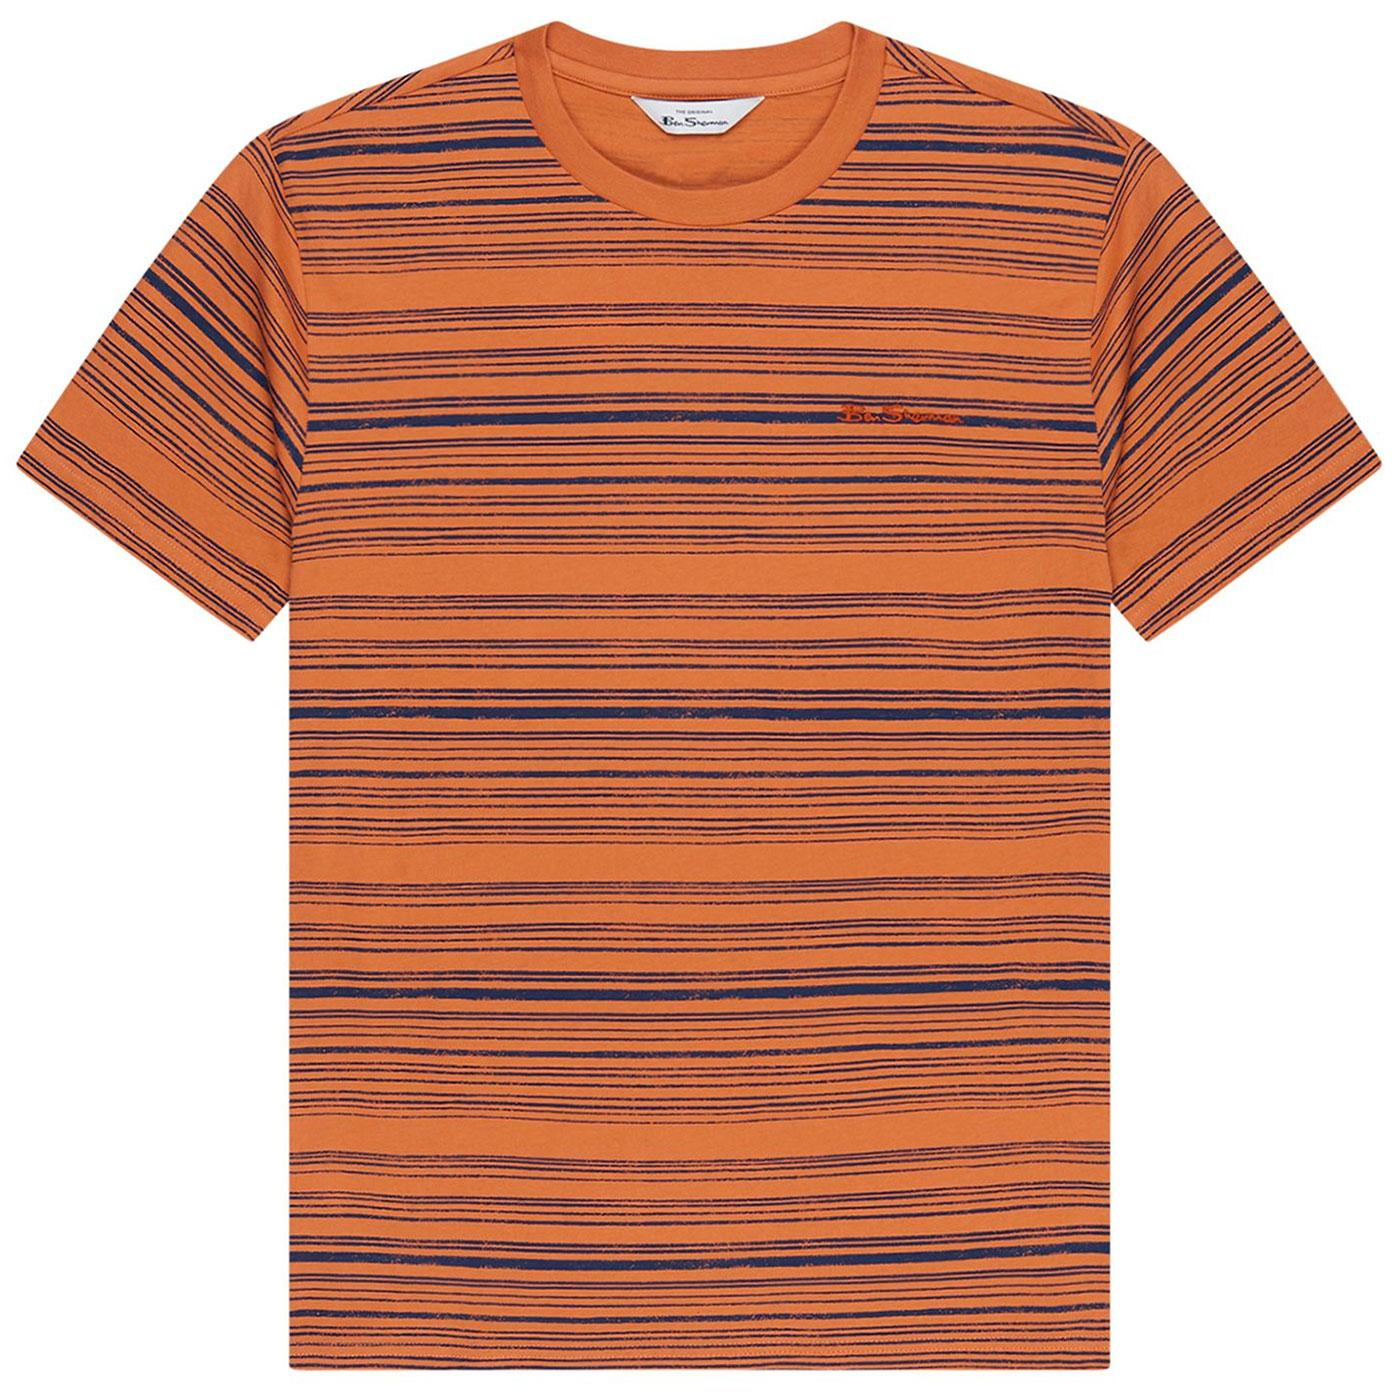 BEN SHERMAN Men's Retro Distressed Stripe Tee A